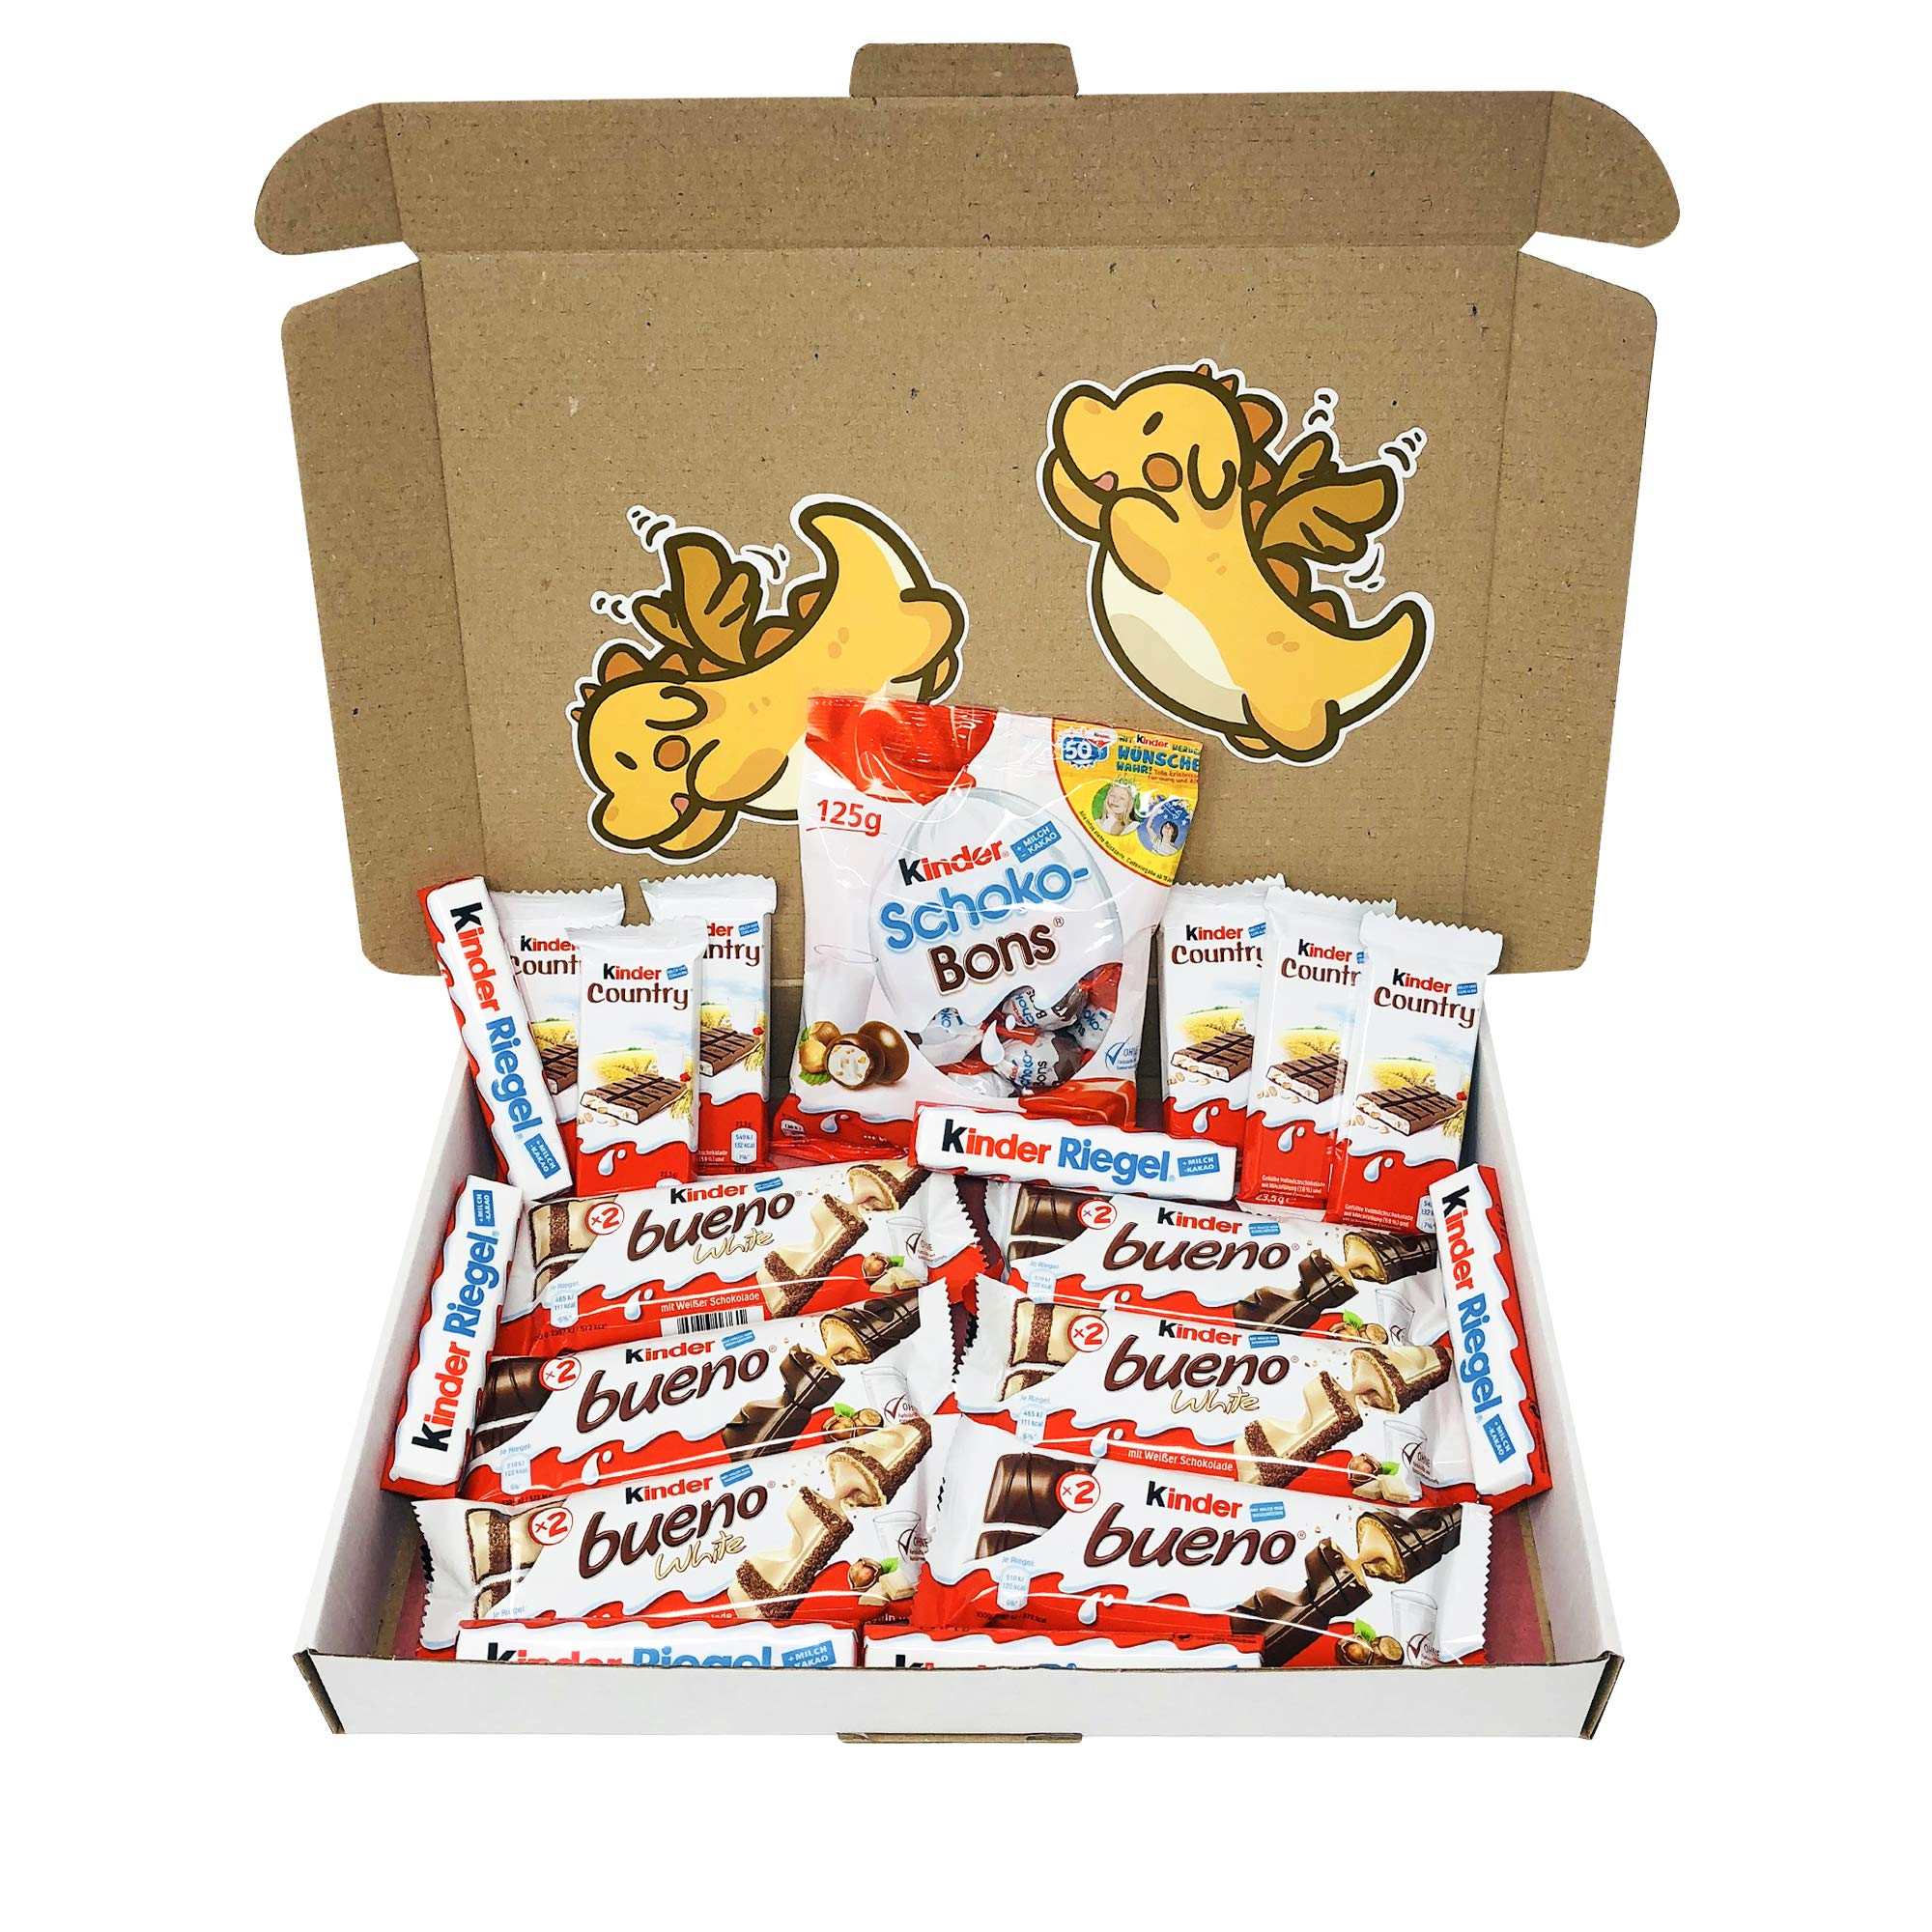 Ferrero Kinder Assorted Chocolates Gift Box (19-Pack) Classic German Candy | Bueno, Bueno White, Riegel, Country, and Schoko-Bons | Personal Packs or Halloween Shareables by KMA Imports / Kinder Schokolade